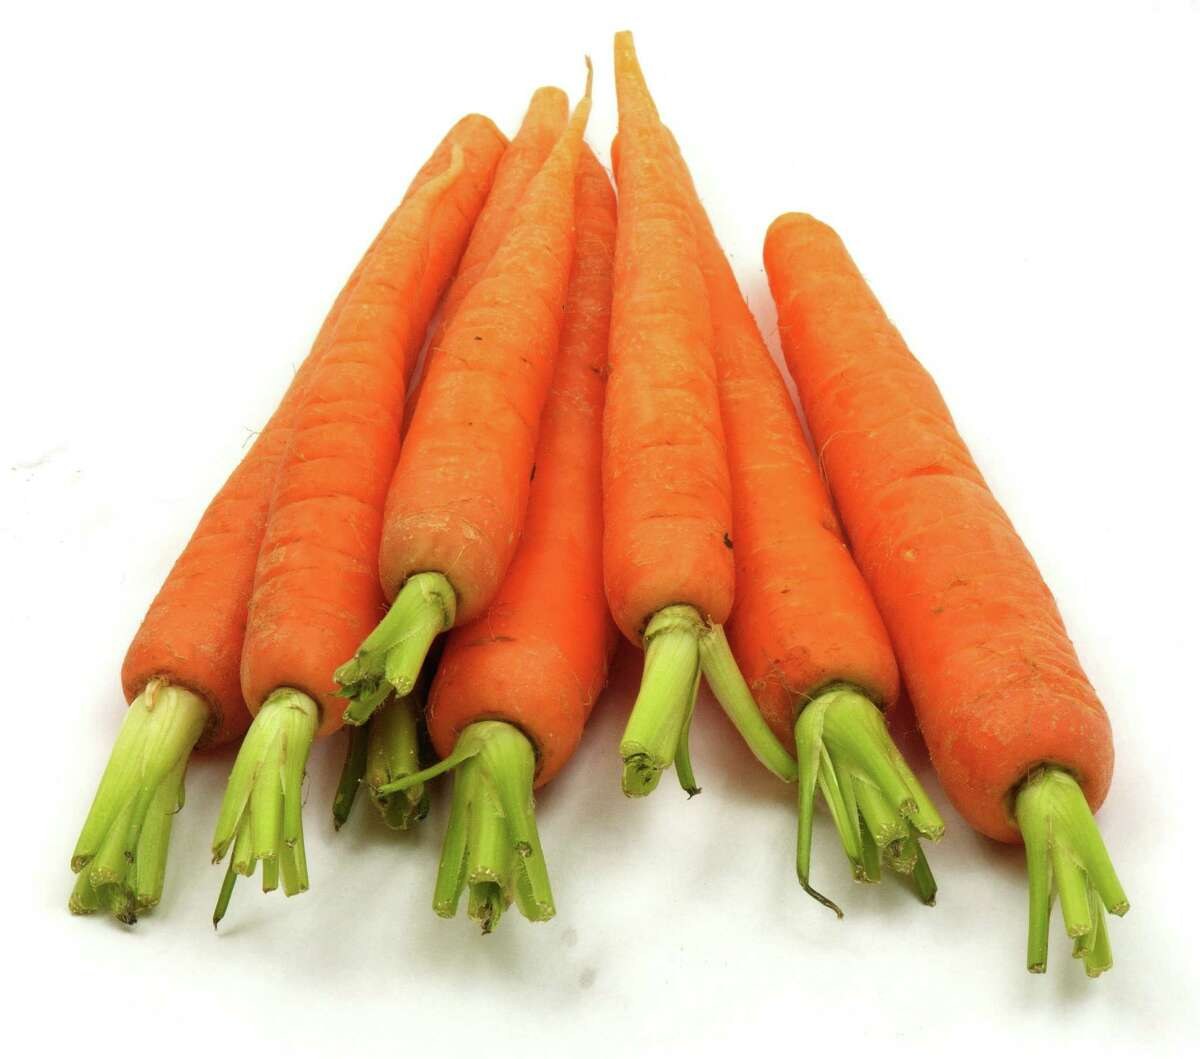 Carrot: Carrot seed takes two weeks or longer to germinate in cold weather, but is worth the wait. Keep soil surface moist if rains fail. Weed seedlings carefully and thin to 1½ or 2 inches apart. Choose moderately long varieties like 'Nantes' or 'Chantenay.' Grow it: Sow seeds directly in the garden. When to plant: Plant in January if you can work soil between the rains, if not, aim for February.